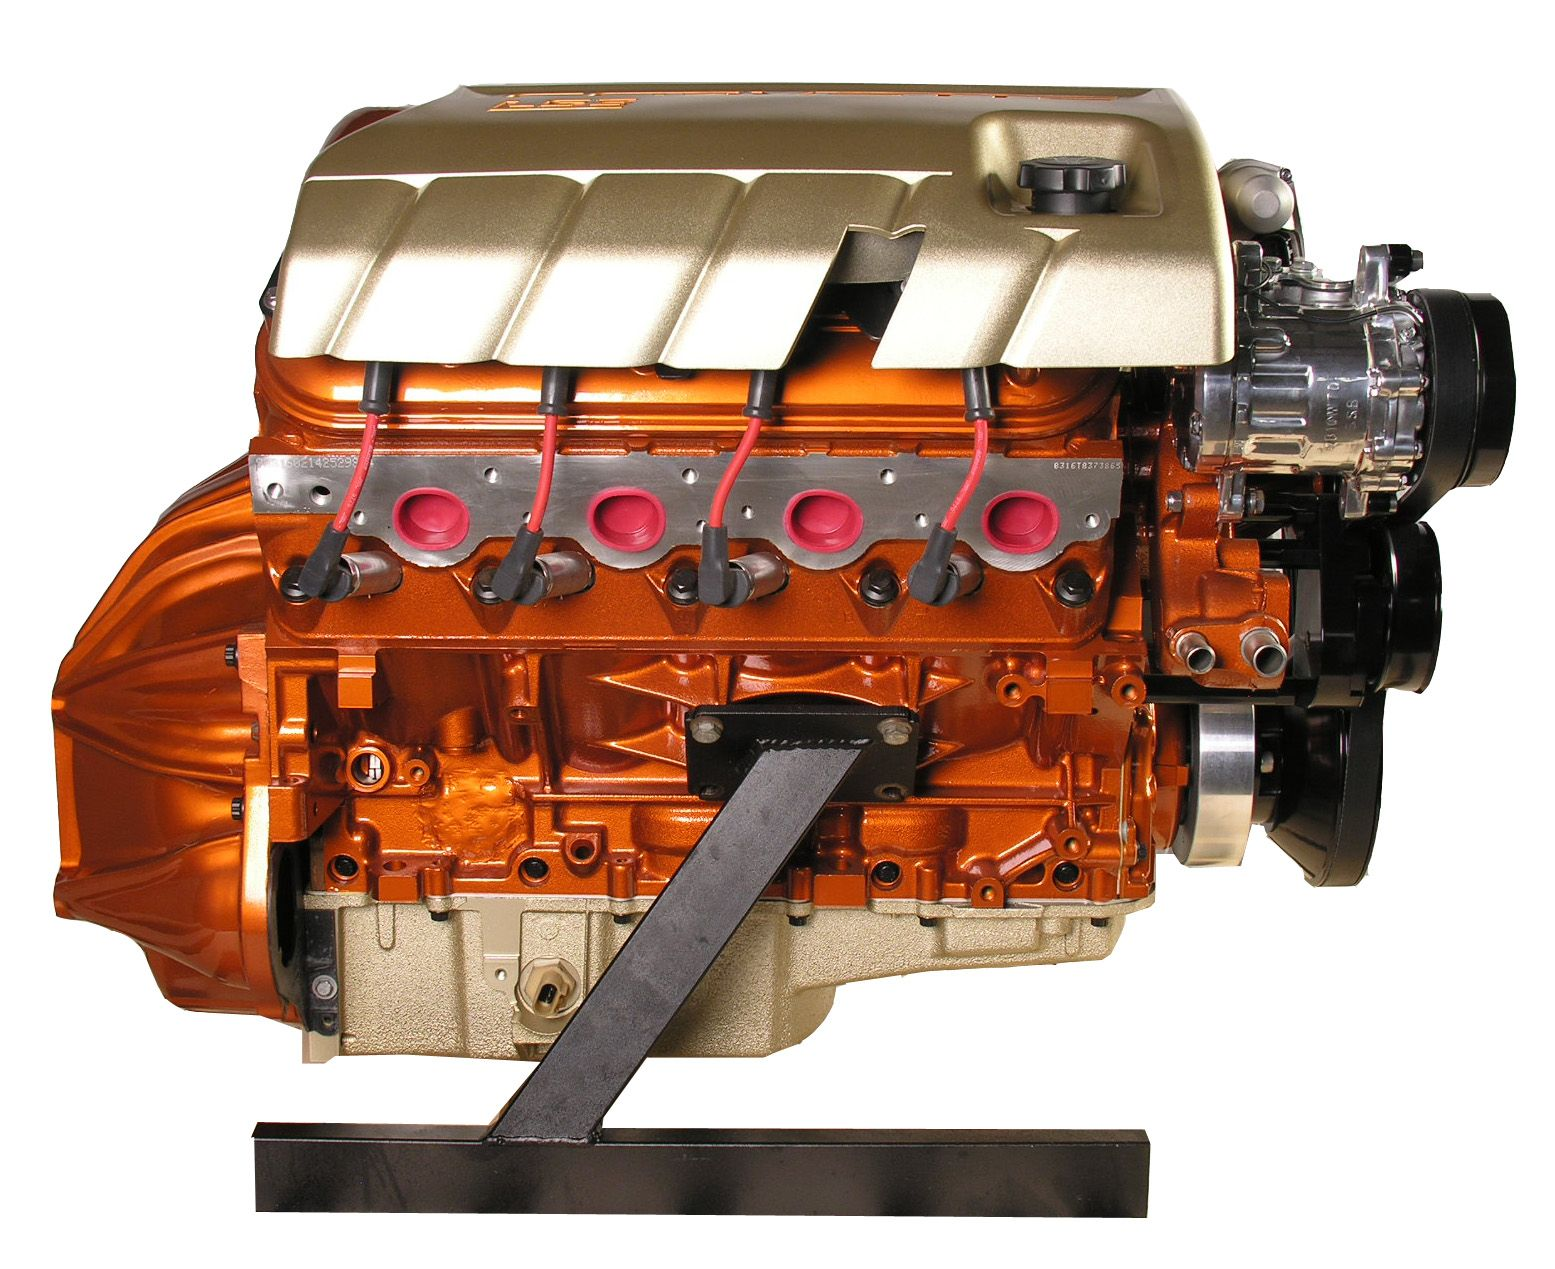 Ls3 Stage 2 Engine 480hp Burnt Orange Champagne Paints